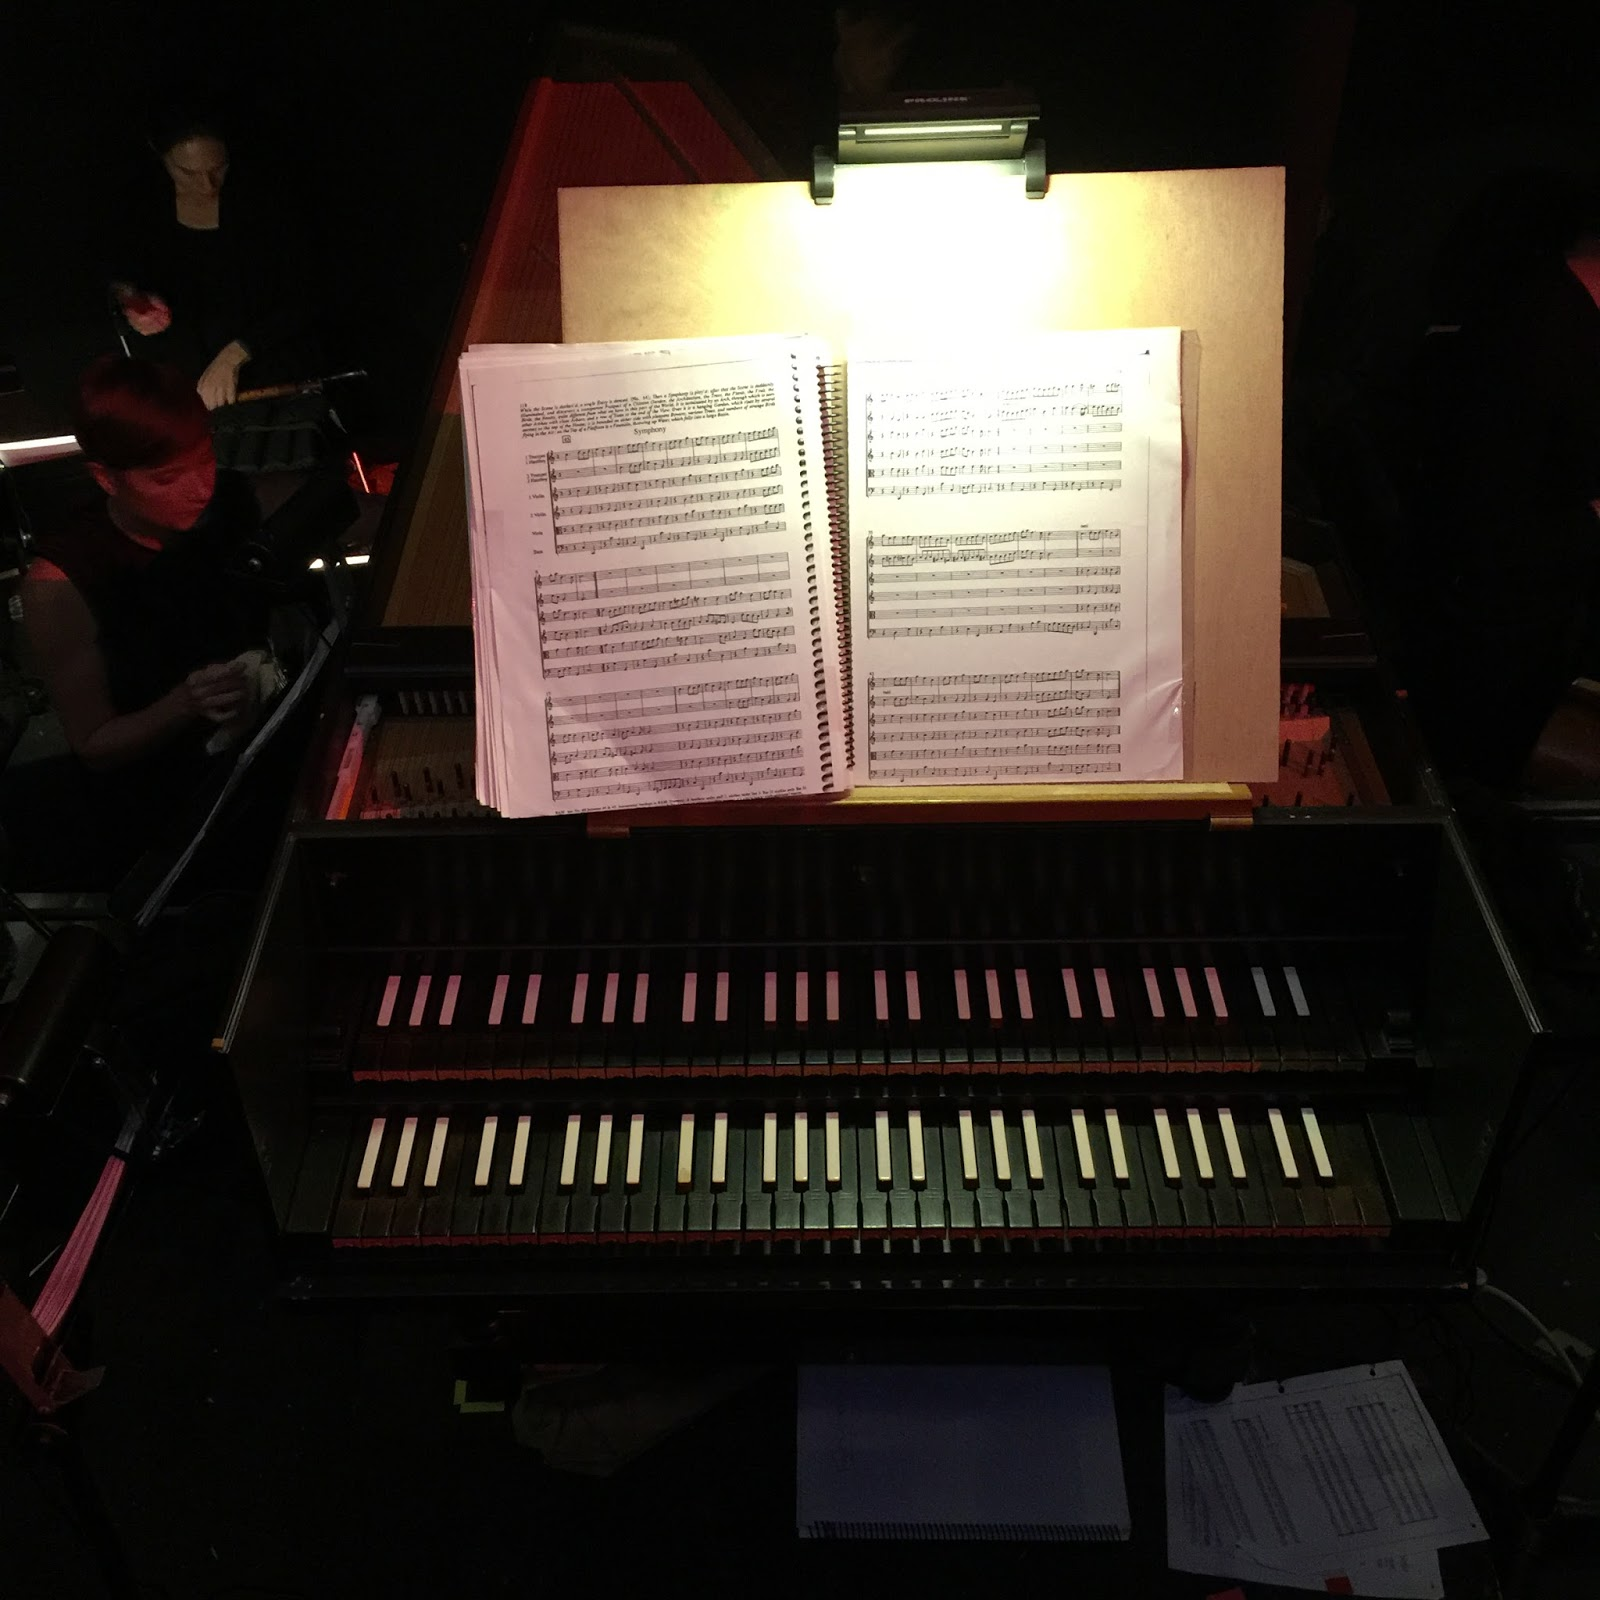 IN REVIEW: the harpsichord played by harpsichordist and conductor JORY VINIKOUR in Chicago Opera Theater's production of Henry Purcell's FAIRY QUEEN, 11 November 2016 [Photo by the author]